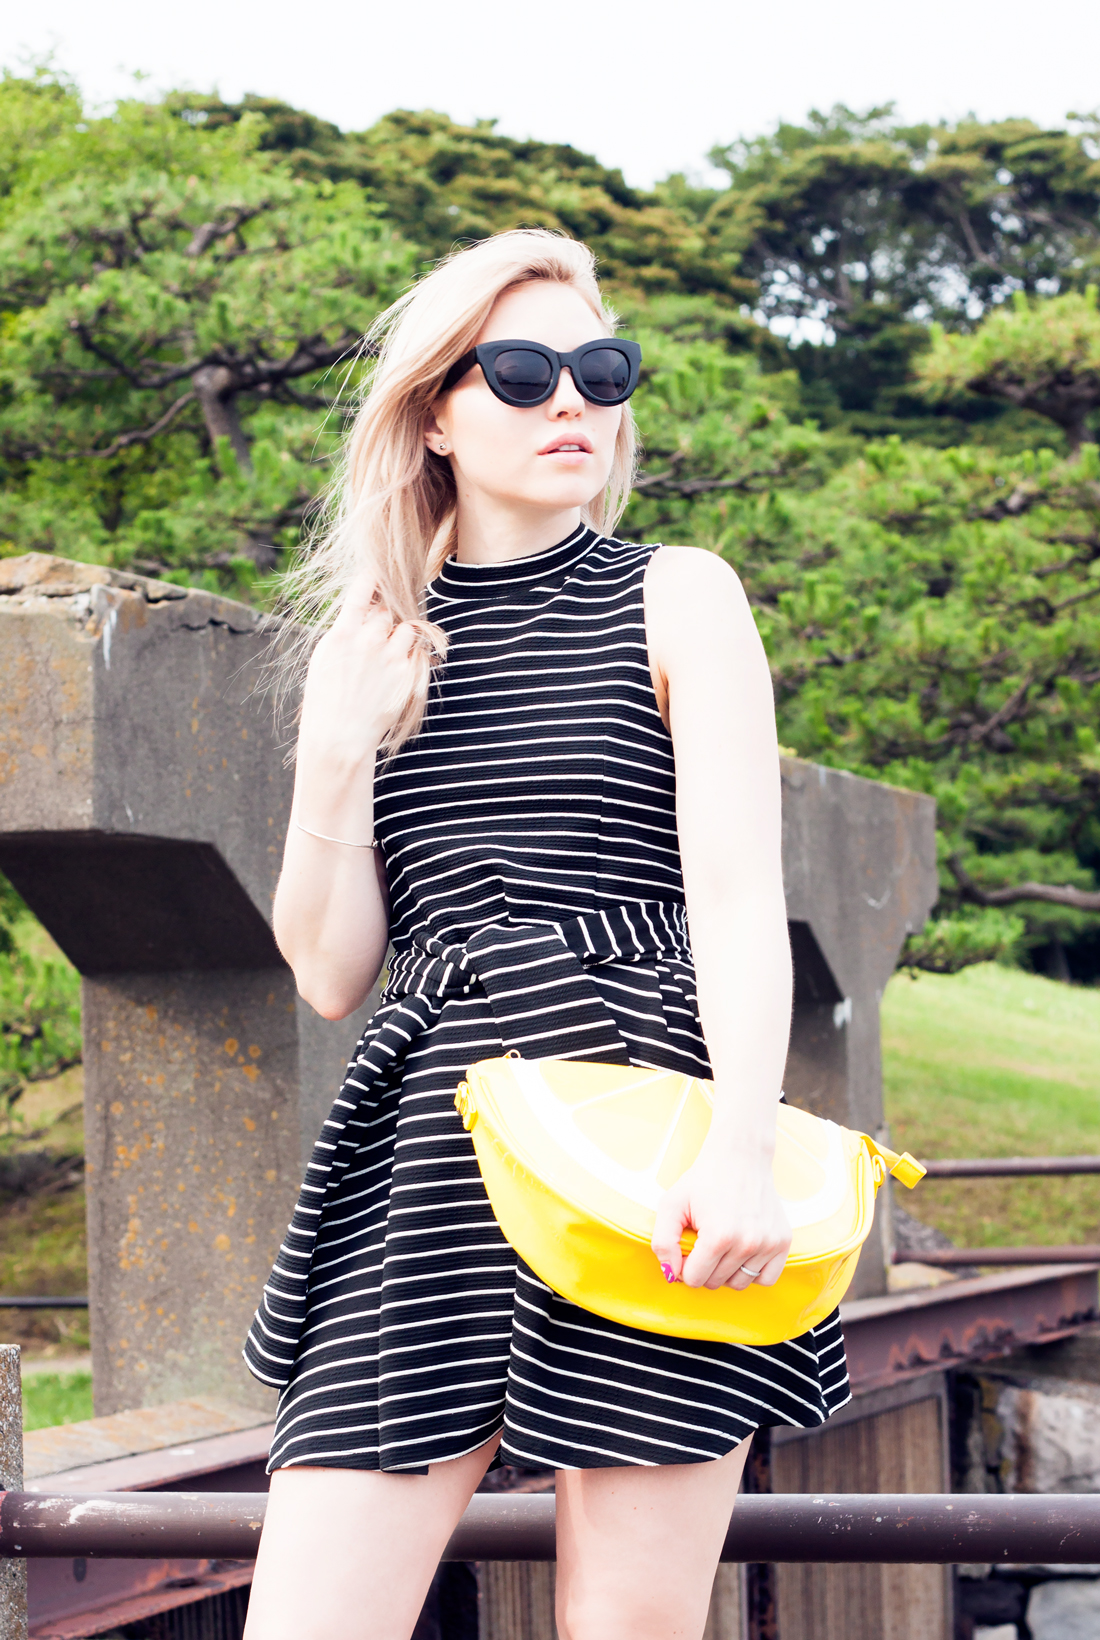 Lemon clutch, hama-rikyu garden, tokyo, japan, tokyo fashion, lemon, barbie nails, nail stickers, platform sneakers, cat eye sunglasses